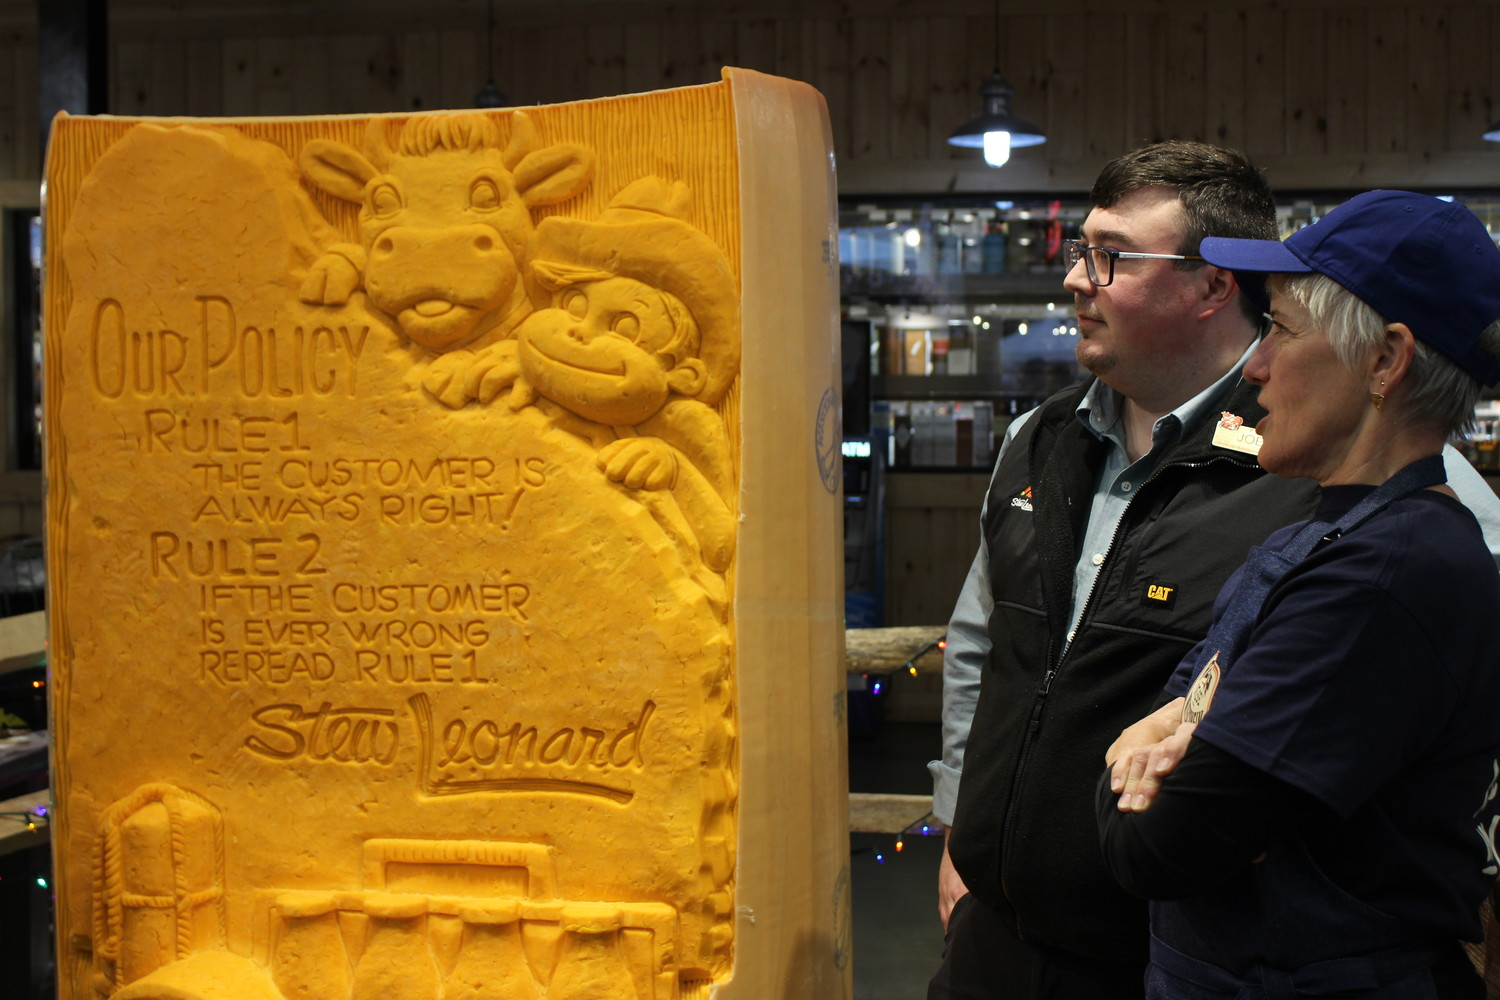 "The East Meadow Stew Leonard's is hoping to make history for hosting the creation of the world's largest cheese sculpture, if the ""Guinness Book of World Records"" confirms it. Artist Sarah Kaufmann, far right, carved the 3,462-pound aromatic work. With her was Deli Manager Joe Czel."